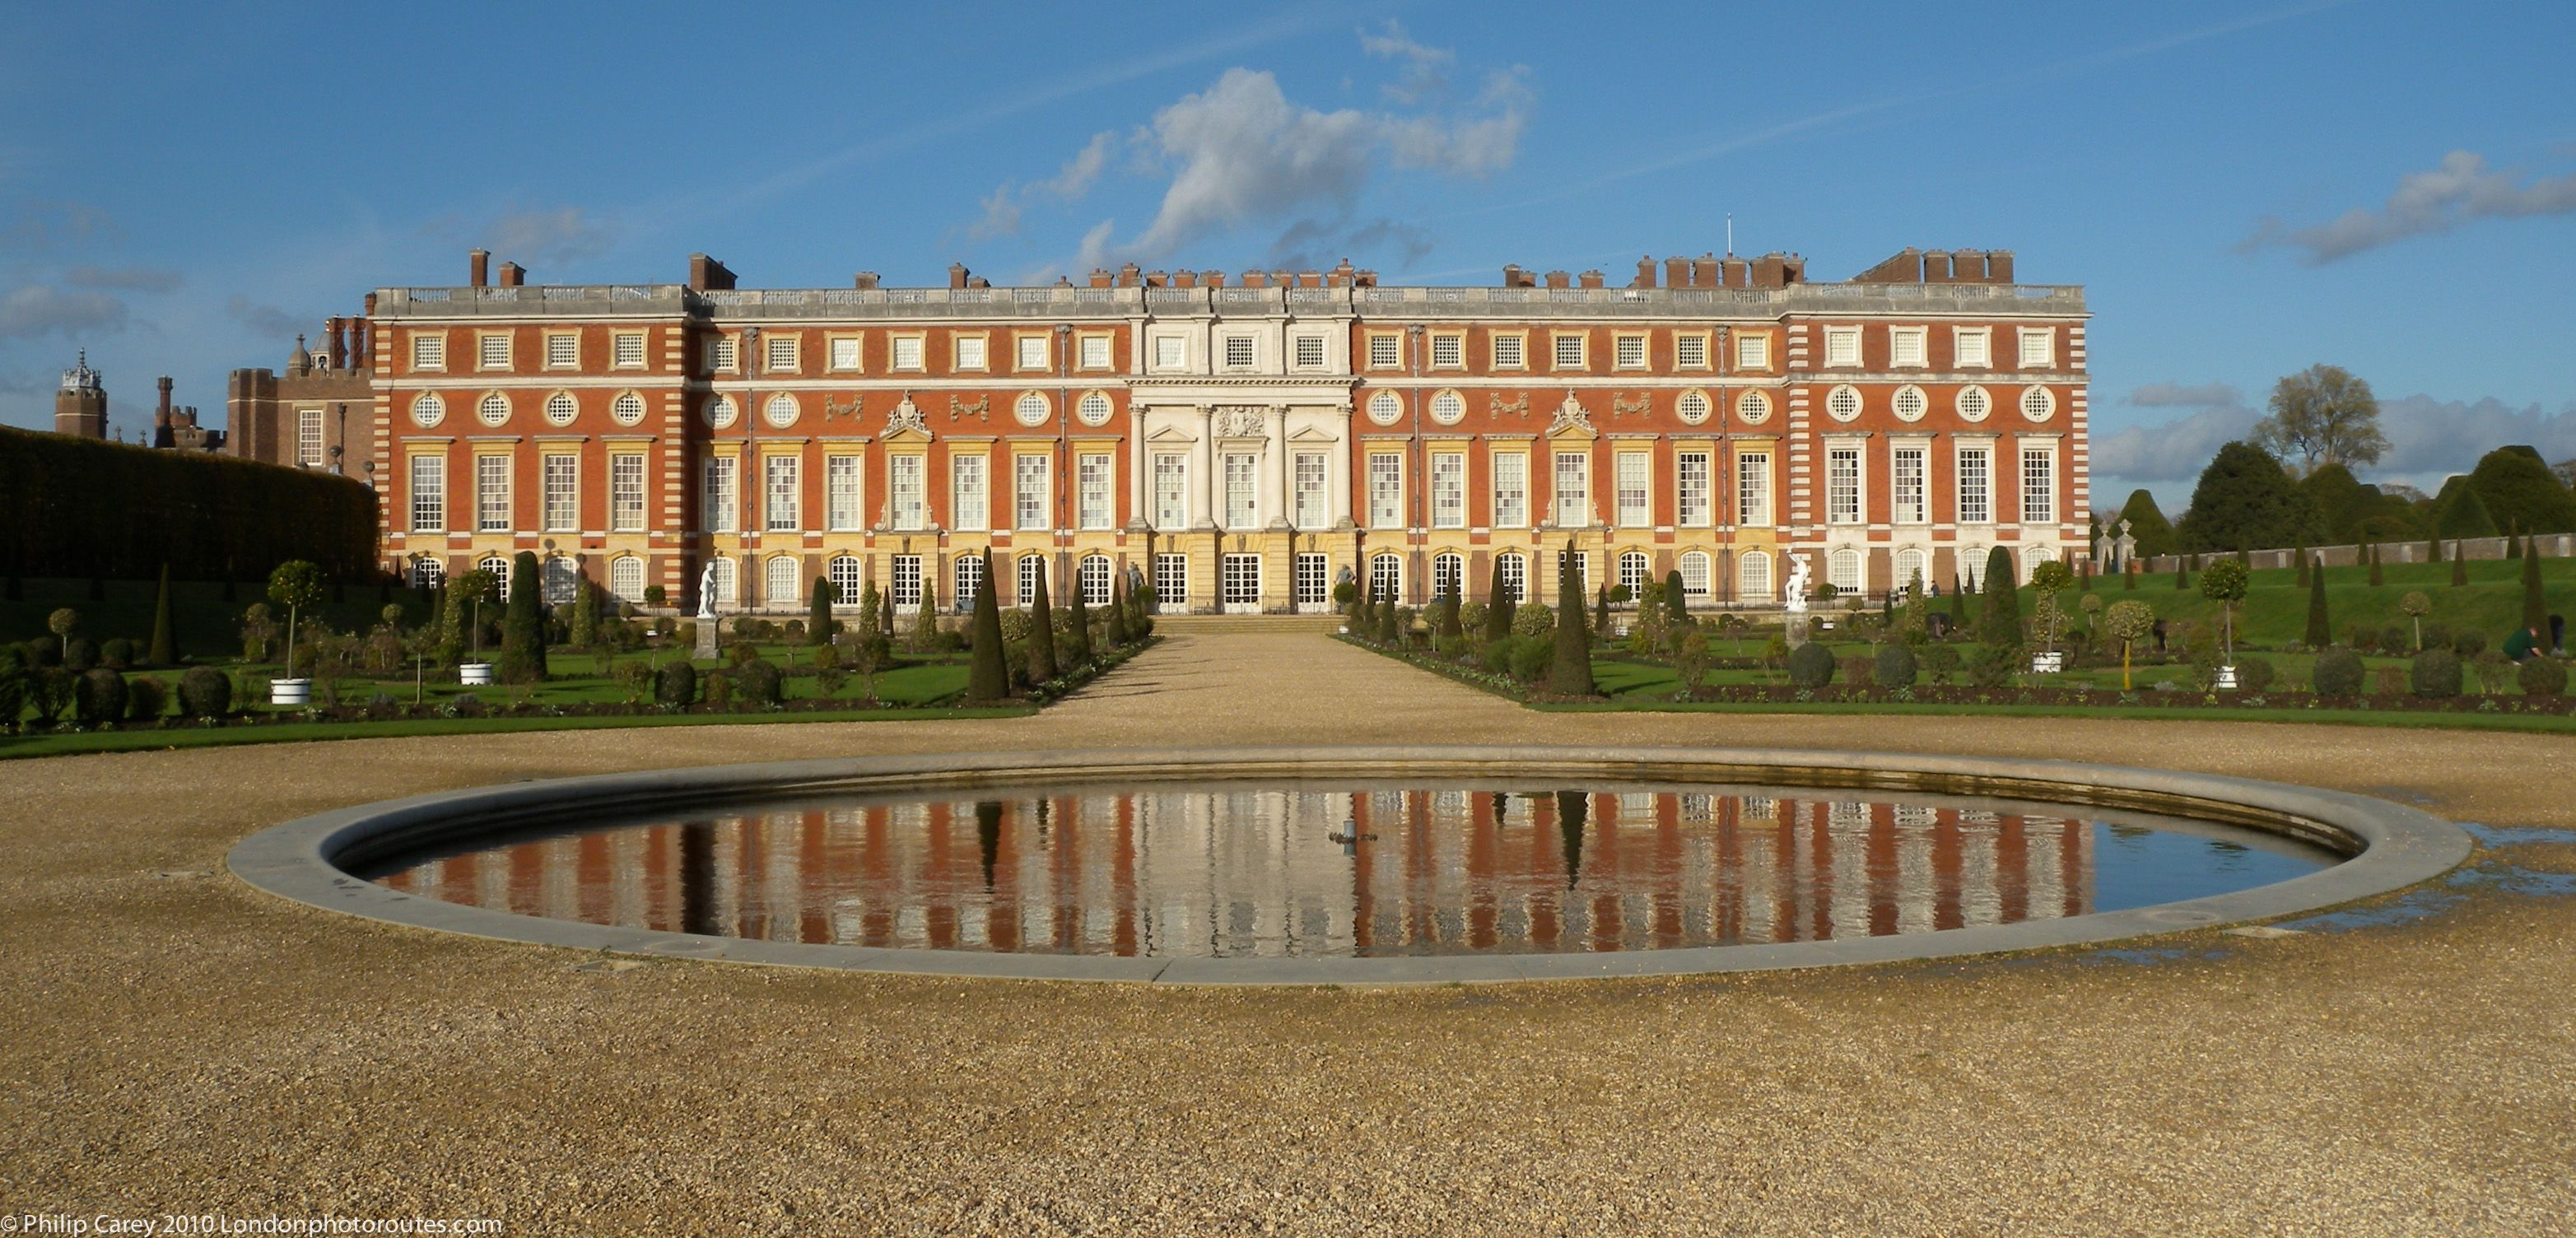 Pin by Meg B on England Here We Come! Hampton court